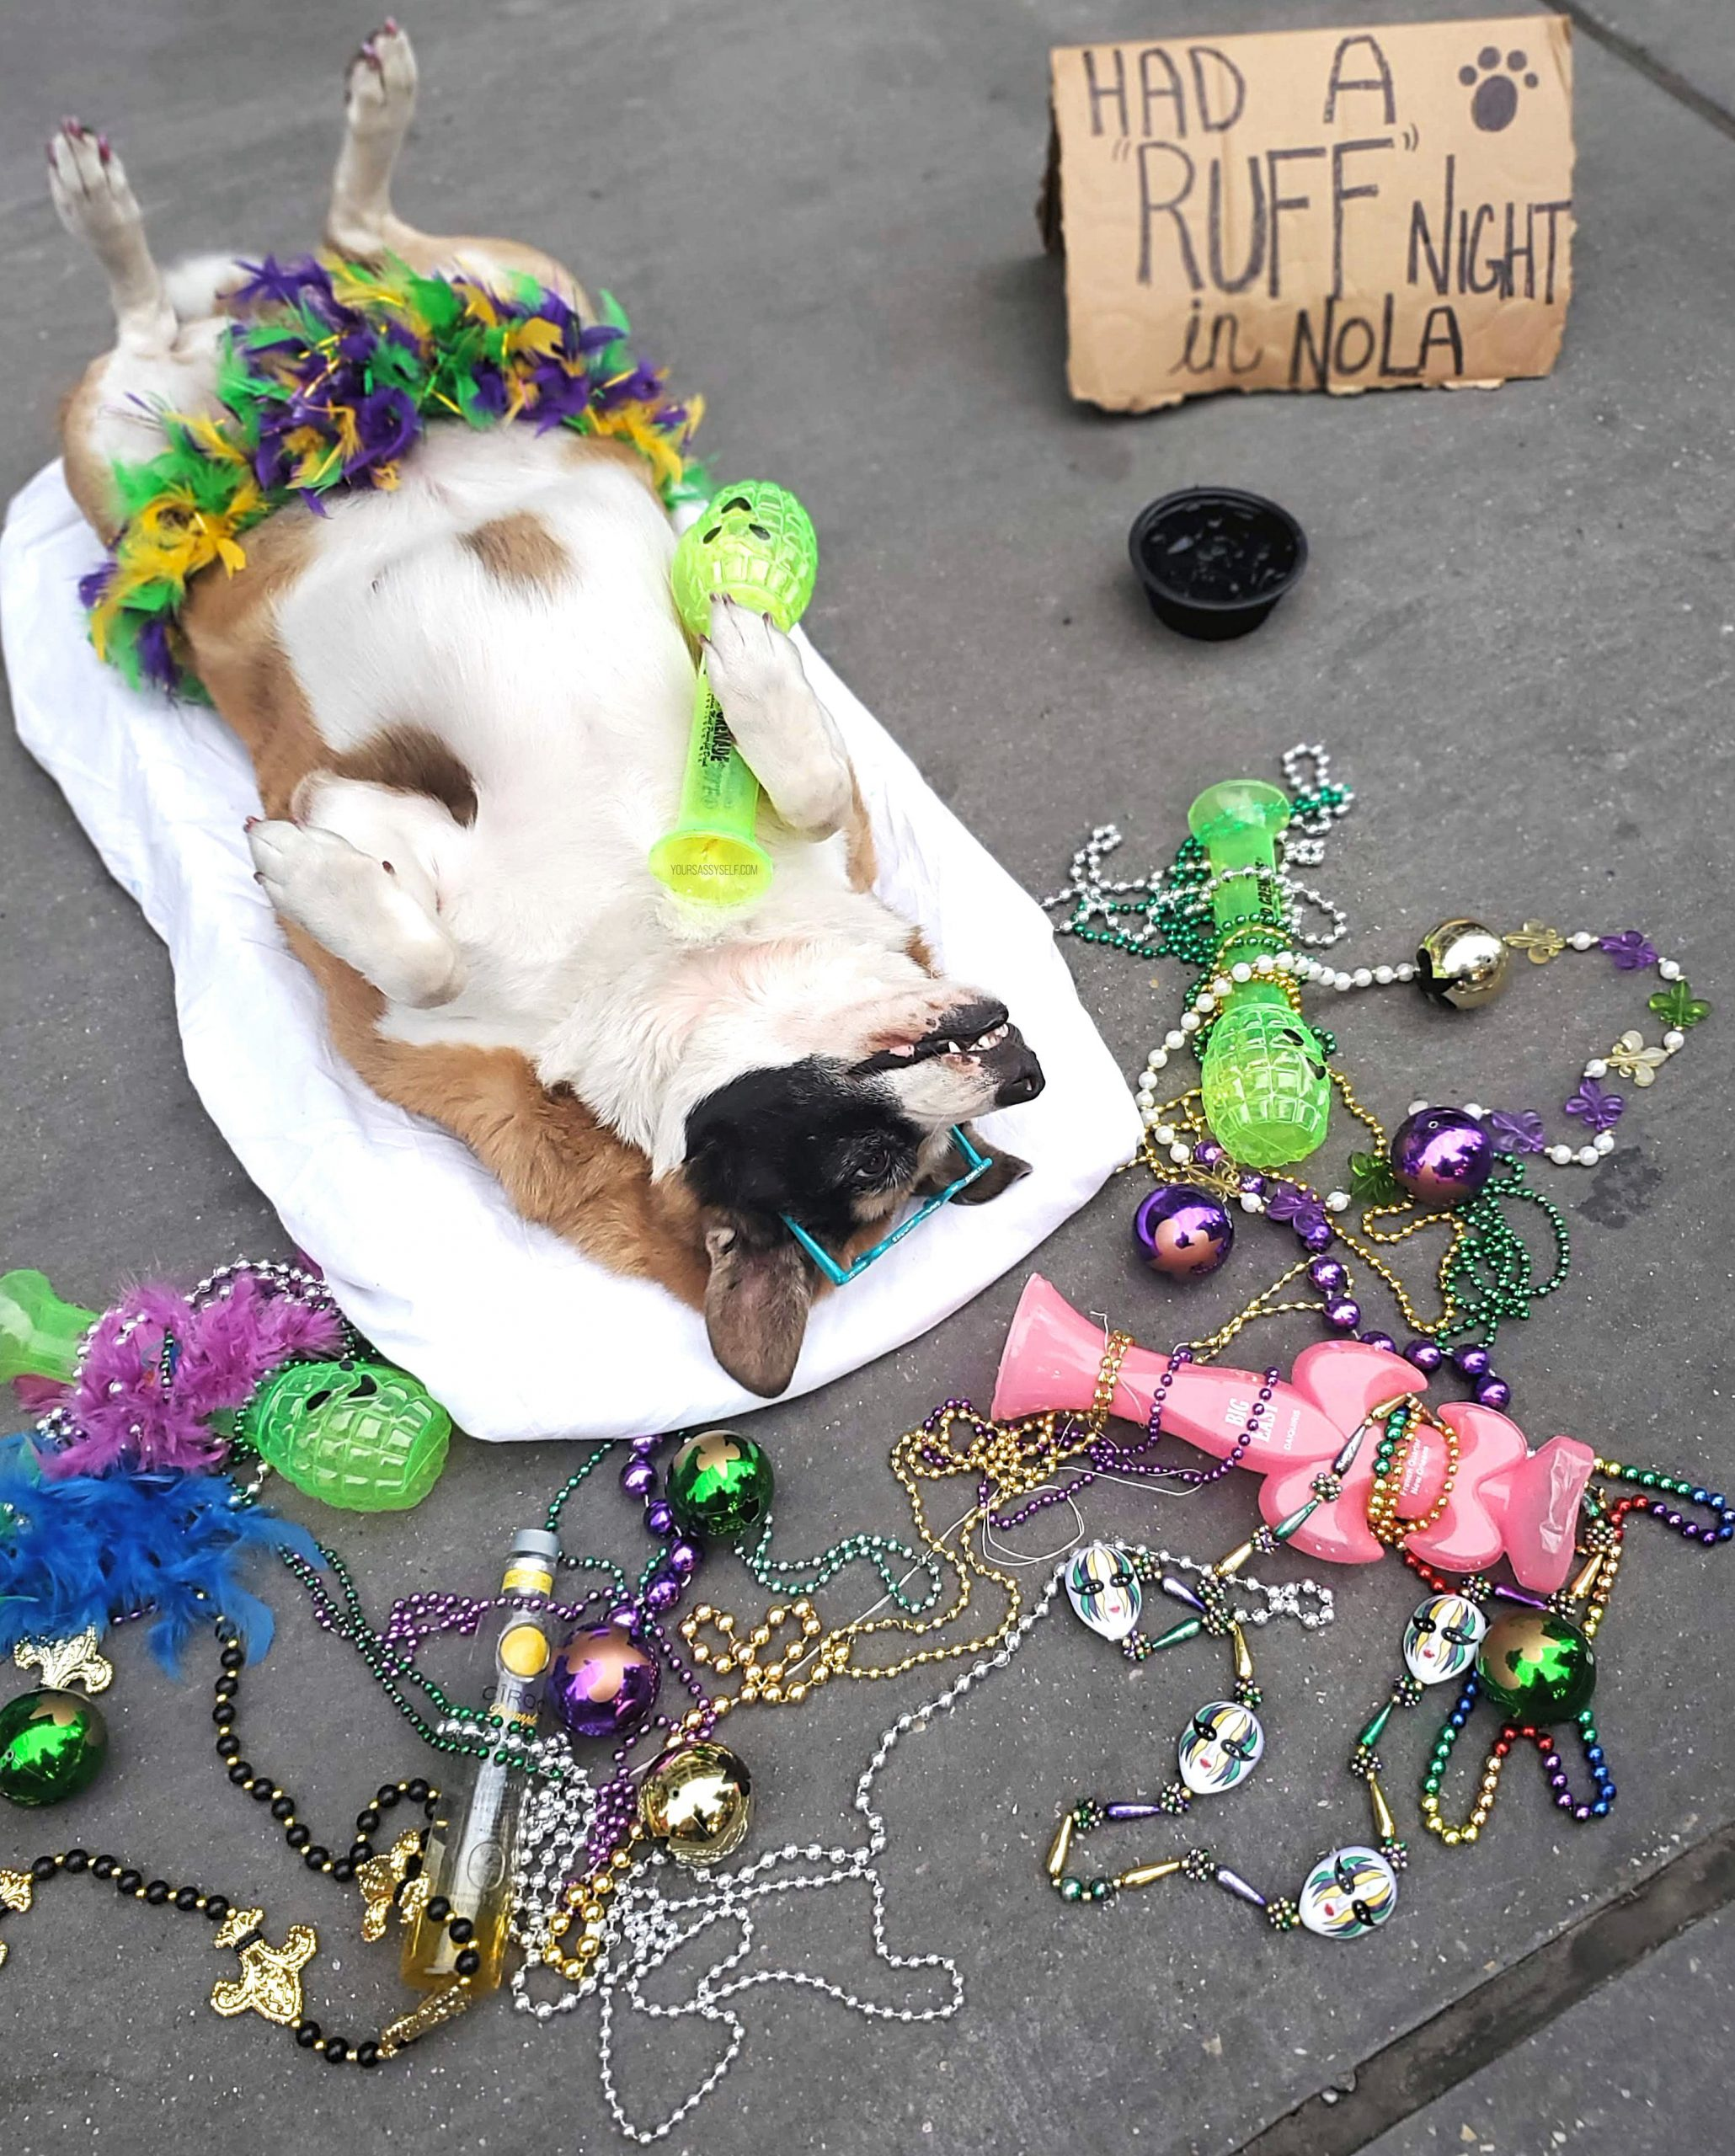 Dog laying on Street after a Ruff Night in NOLA - yoursassyself.com